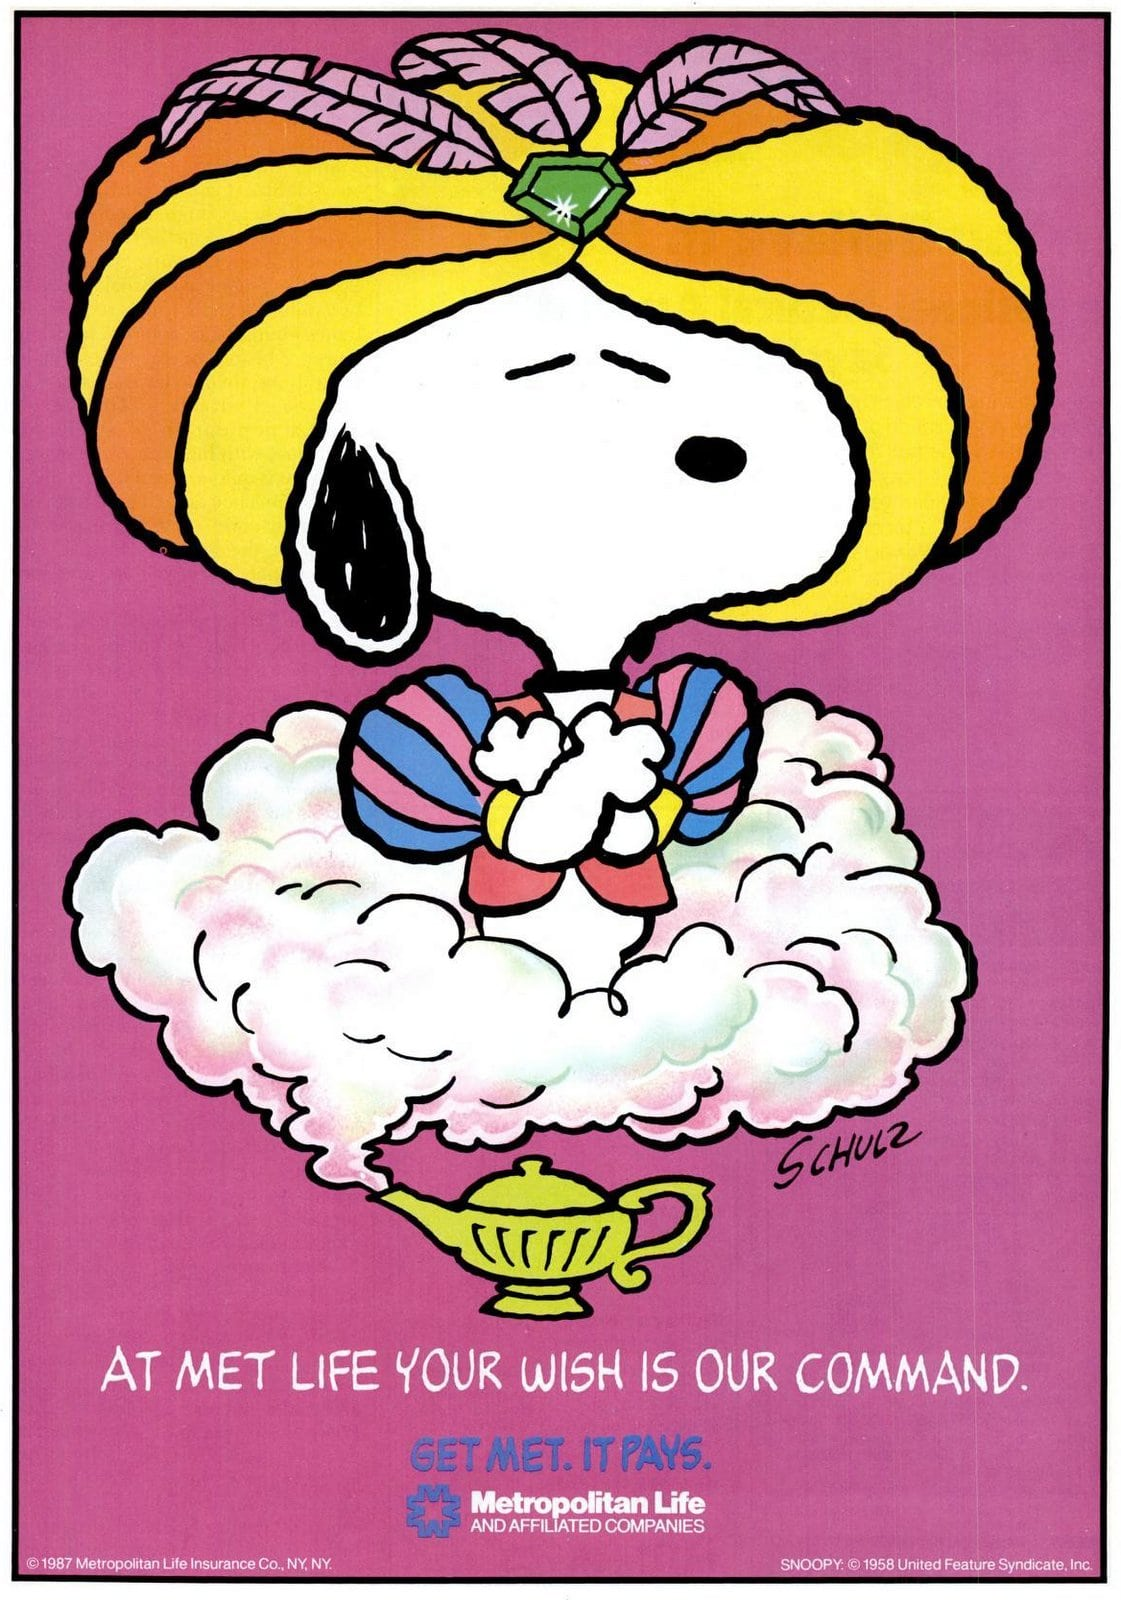 Snoopy - Peanuts for Met Life (1987)